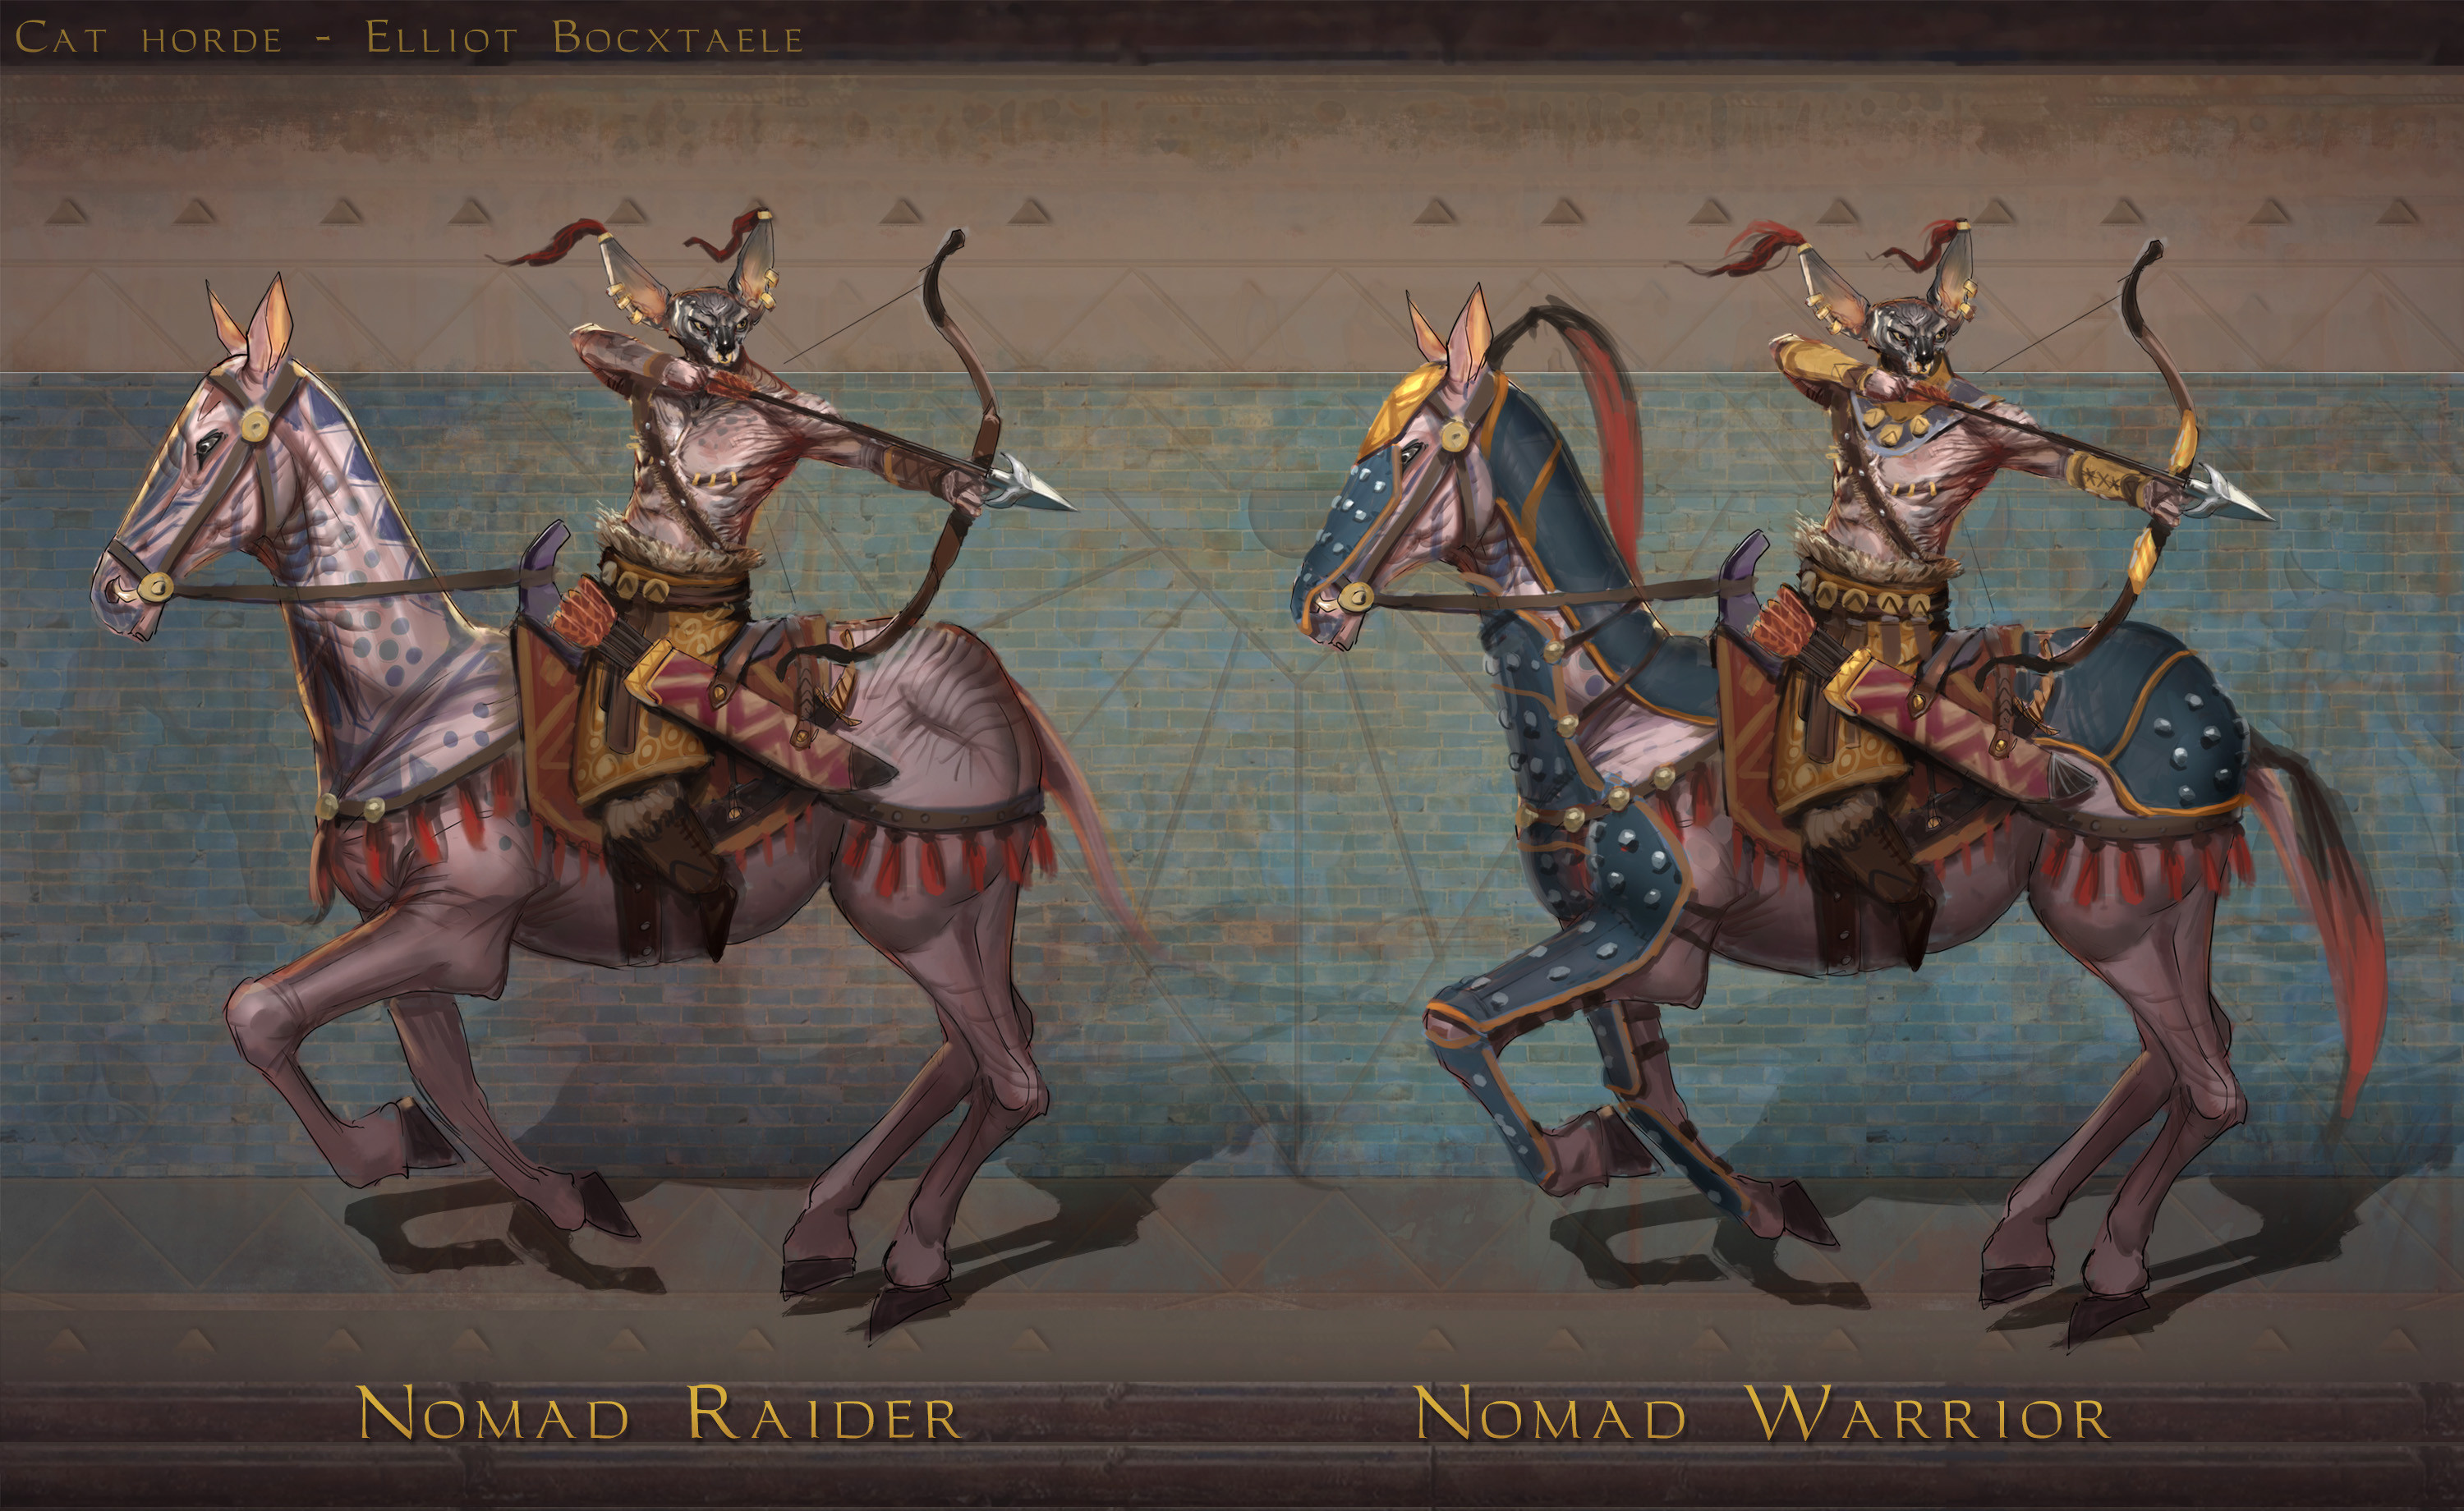 TIER 3 Nomad. The way of the bow and horse was tradition for the Cat Hordes, passed on from generation to generation. While most of the hord's society evolved after the great conquest, some still follow the paths of their ancestors. The free nomads ...